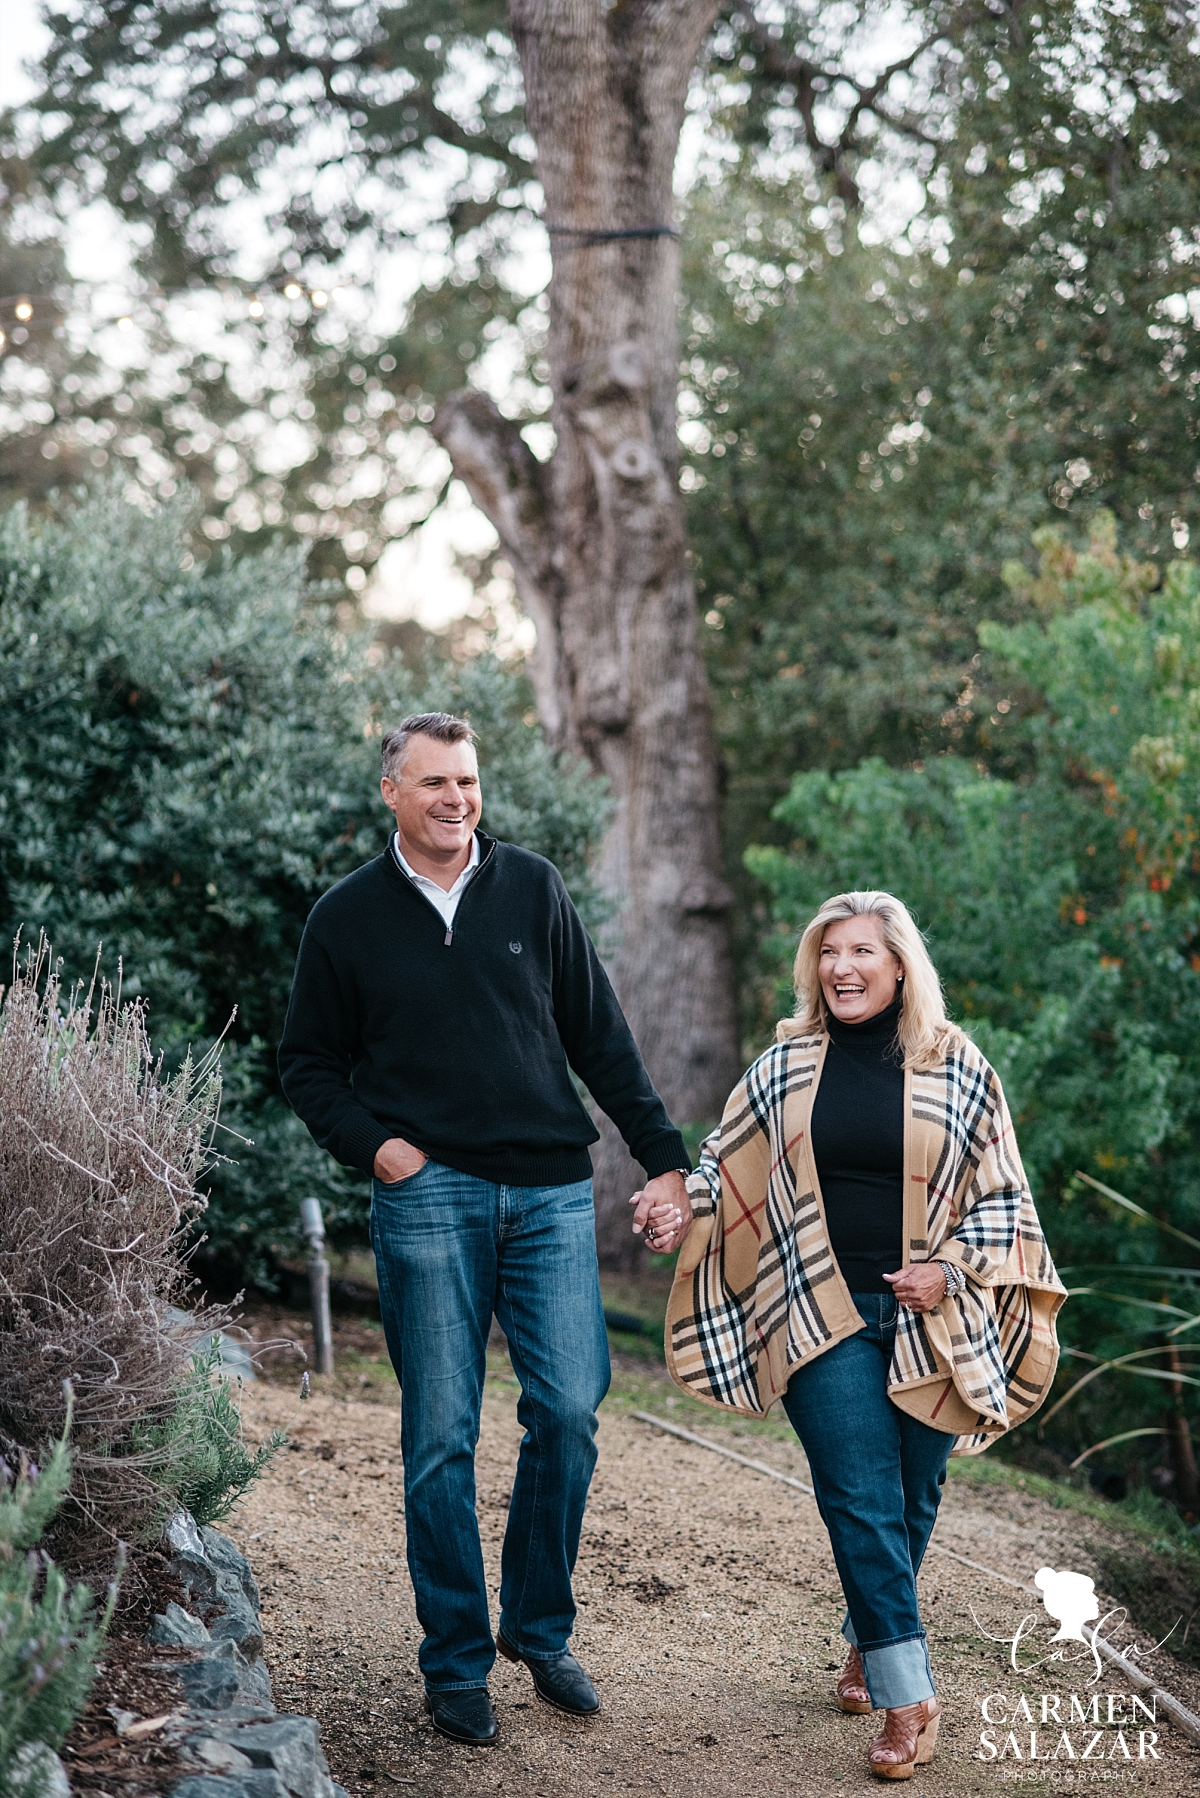 Winter outdoor engagement photography - Carmen Salazar